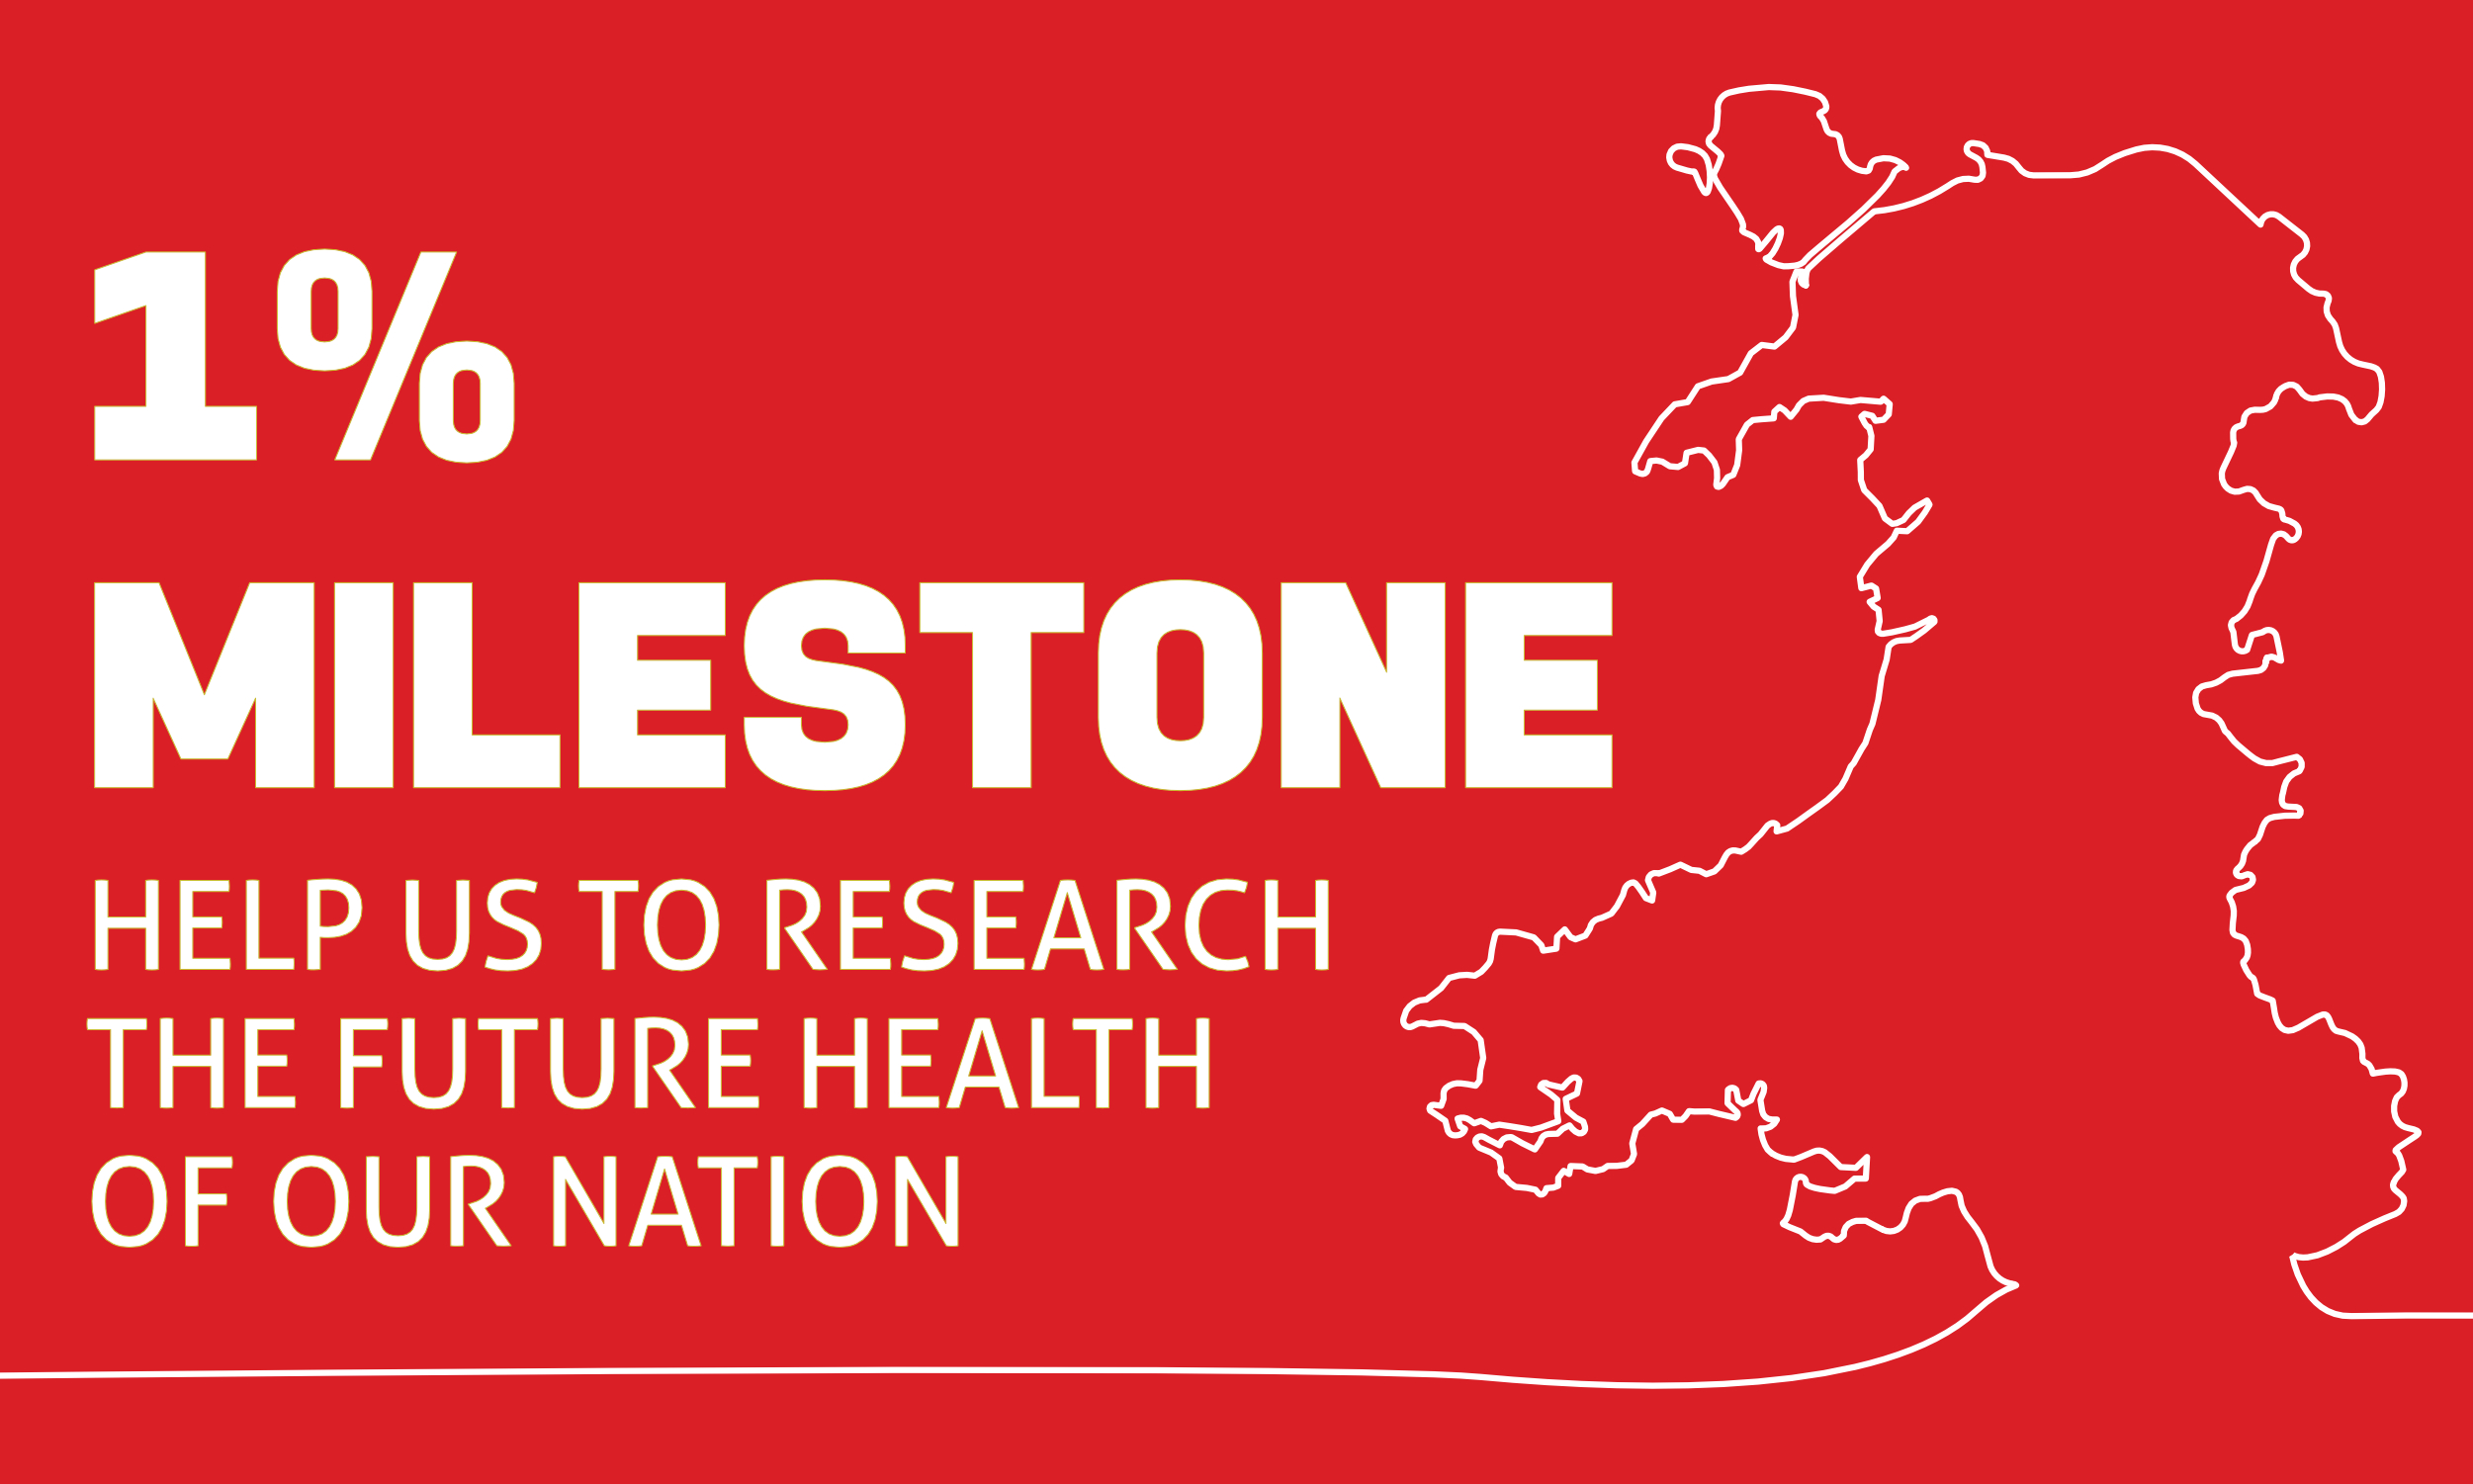 HealthWise Wales has registered over 30,000 people but we need more